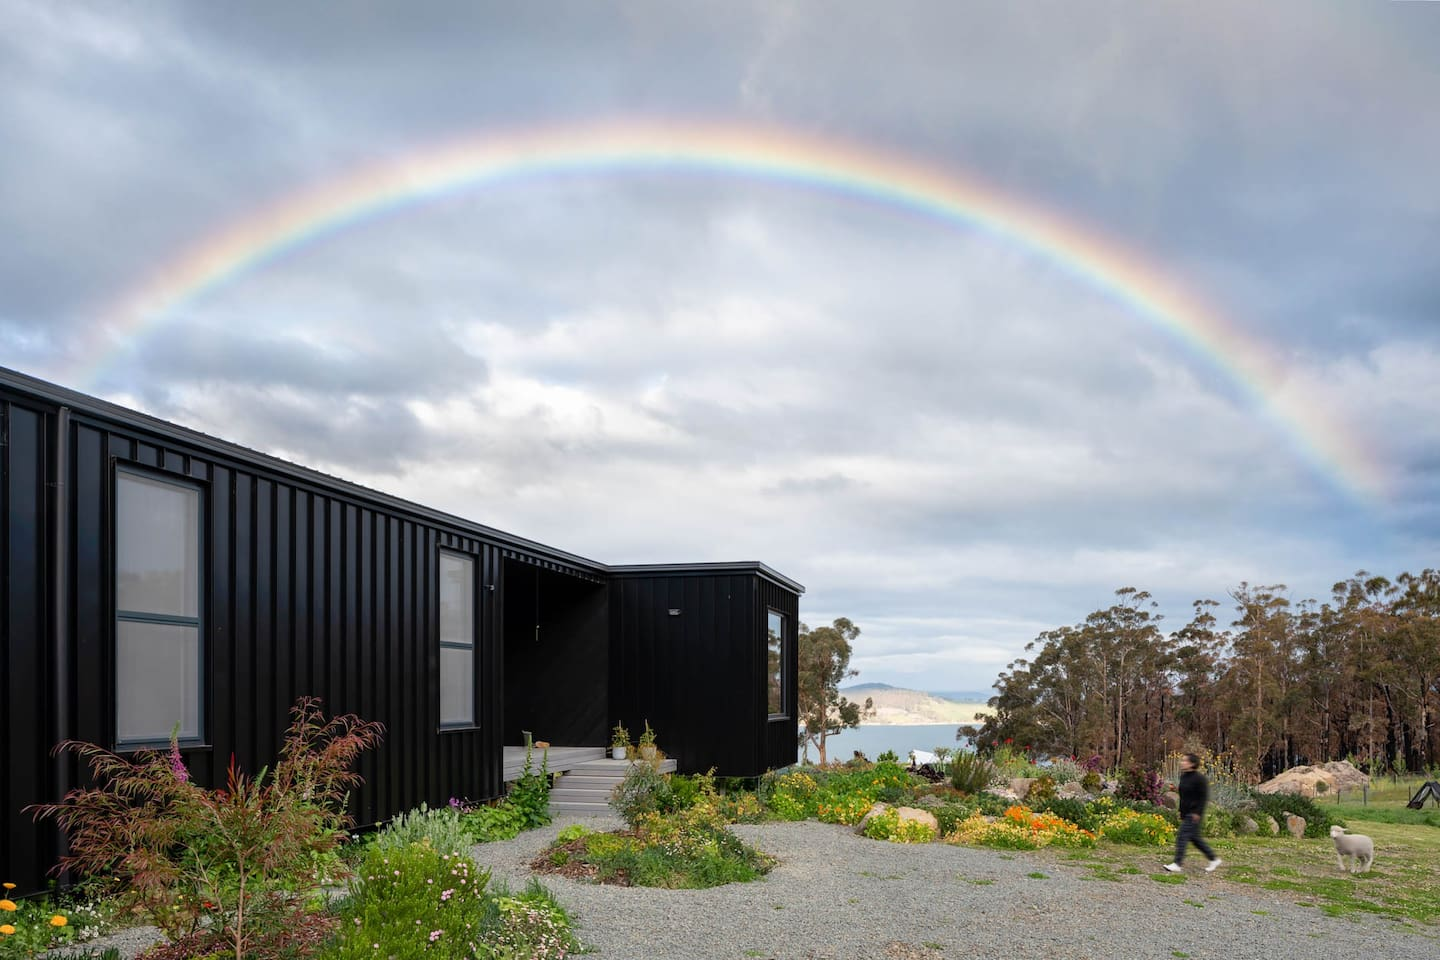 Hello from the island of rainbows! Our house is divided into 2 sections: this is the main house where we live overlooking the D'Entrecasteaux Channel in the Southern Trove.